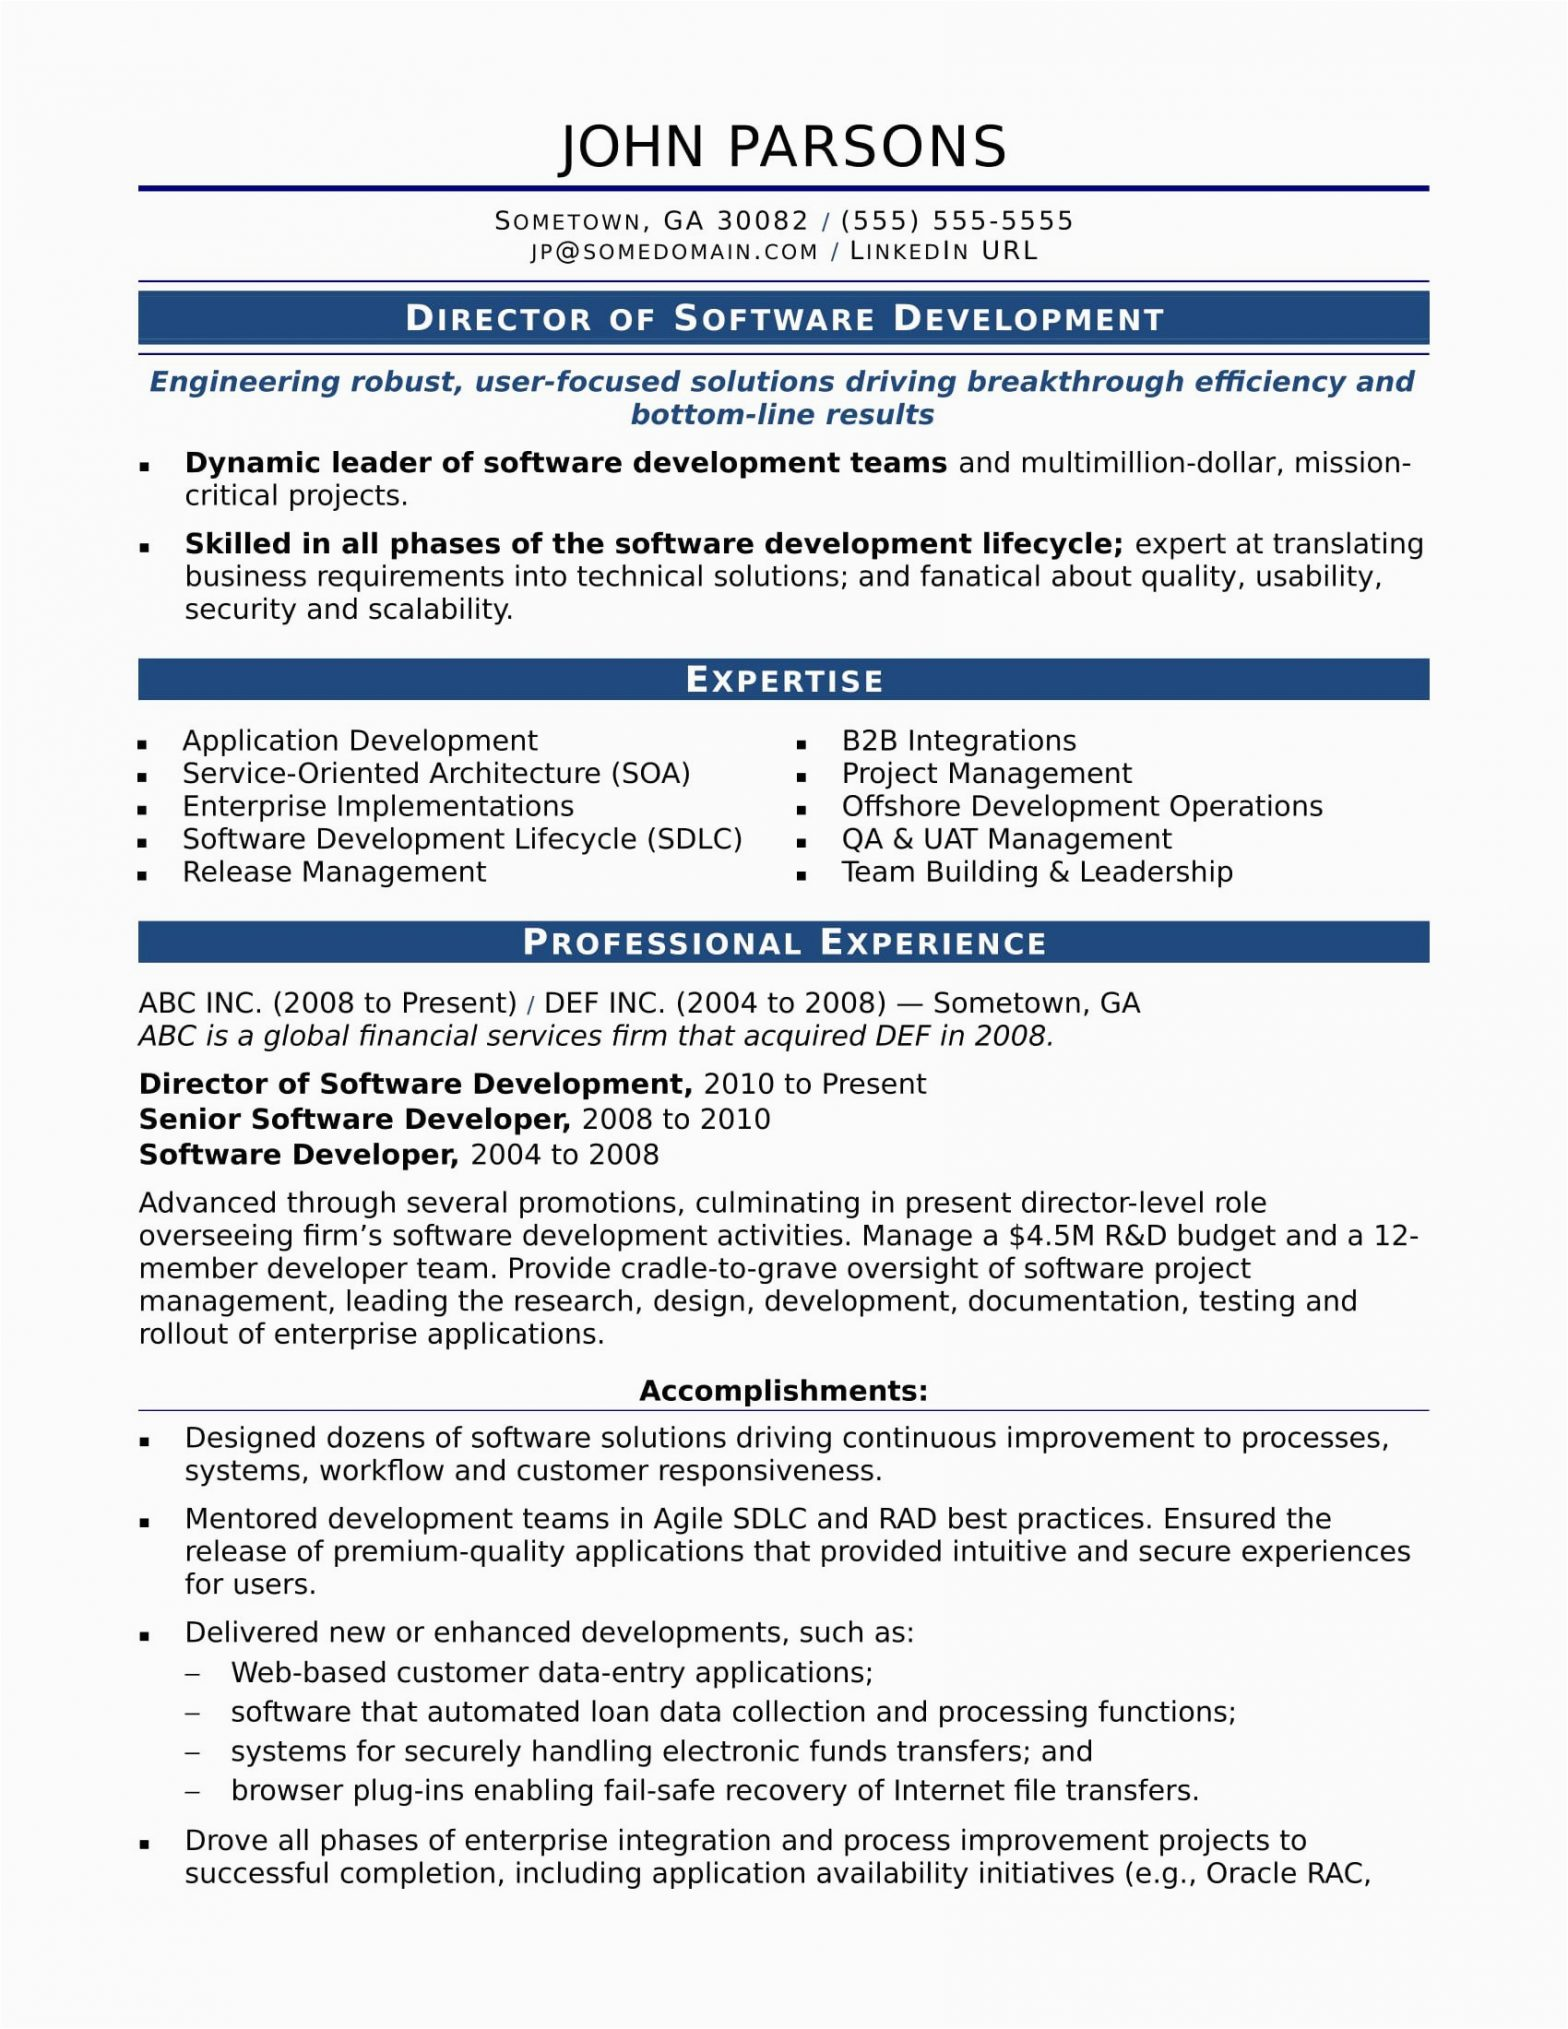 Sample Resume for 3 Years Experienced Mainframe Developer 20 Java Developer Resume 3 Years Experience